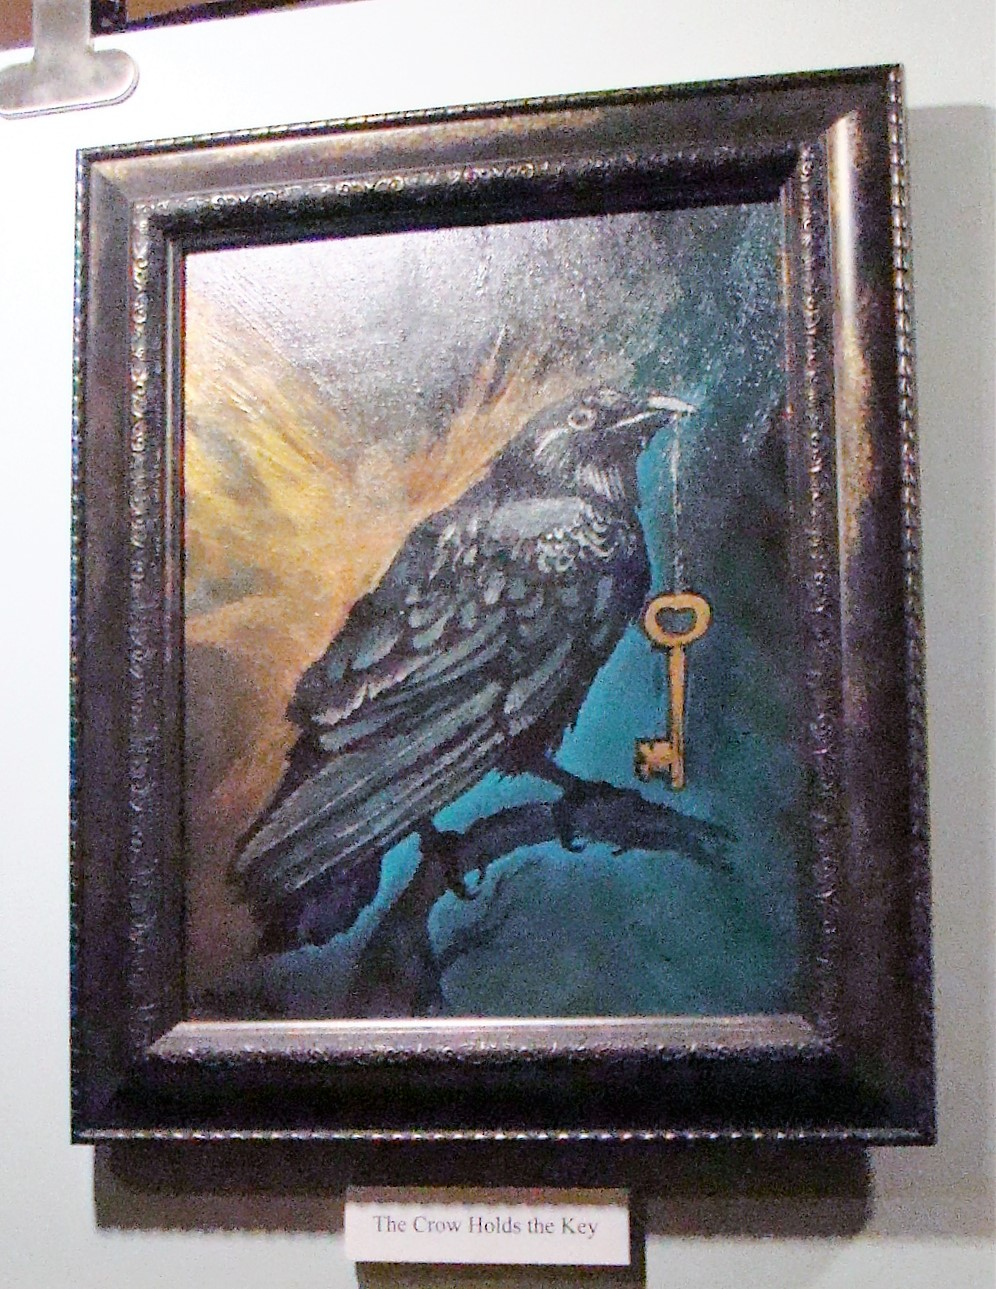 Mindi's The Crow Holds the Key